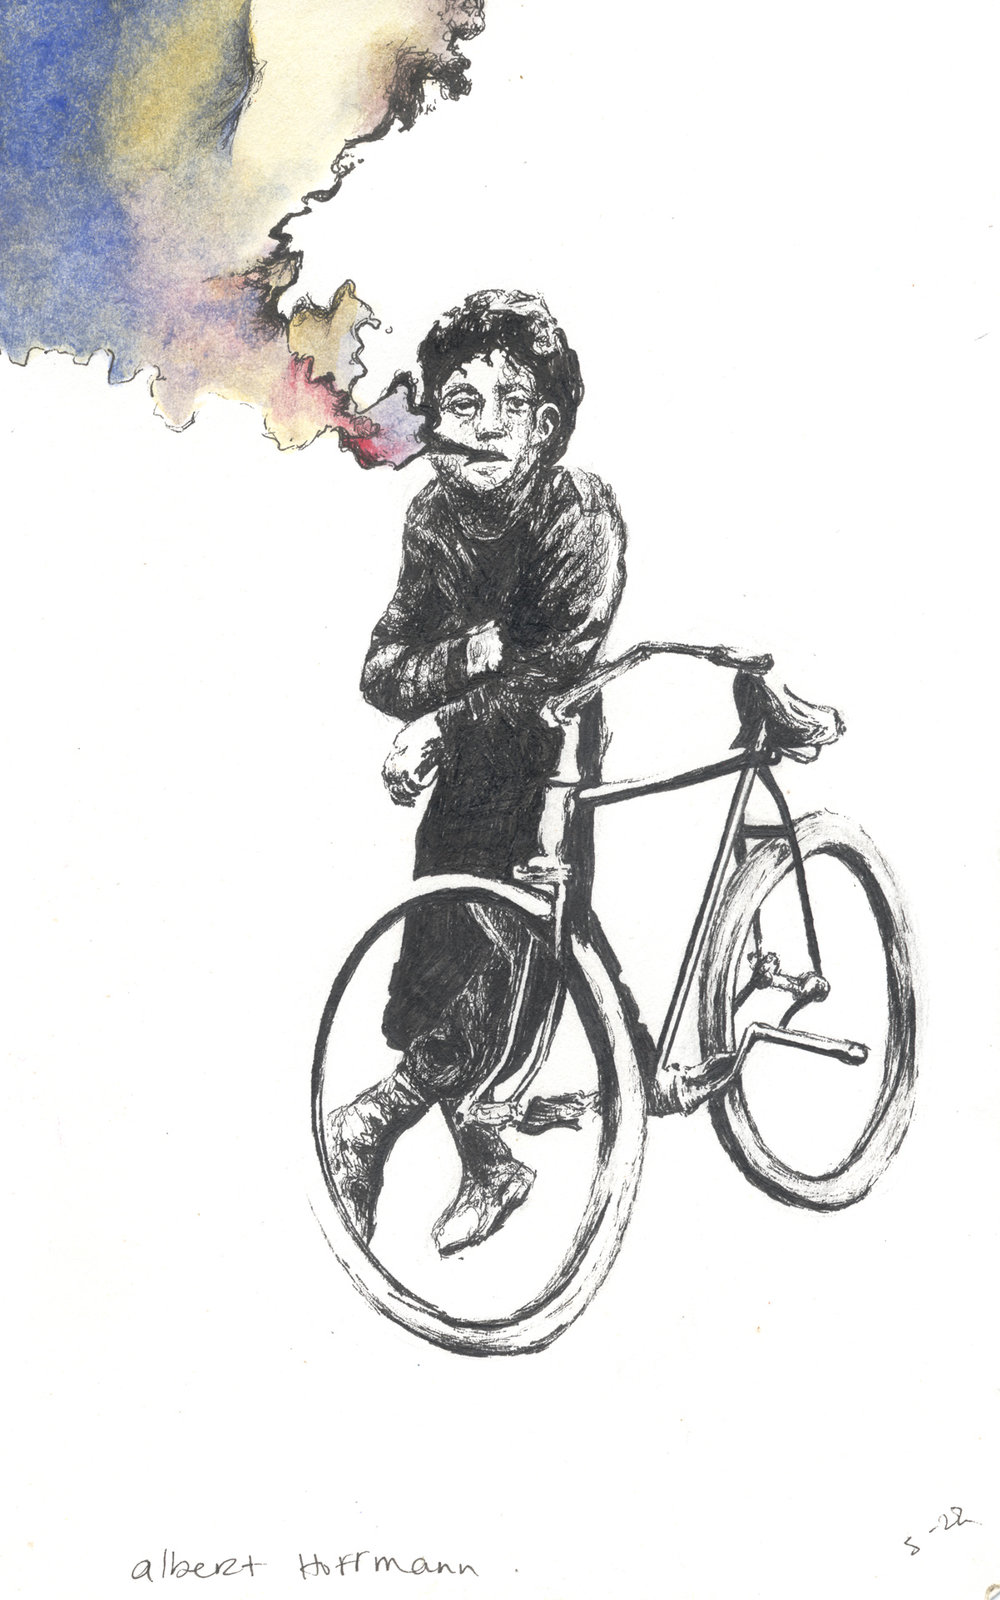 Albert Hofmann's Bicycle Day